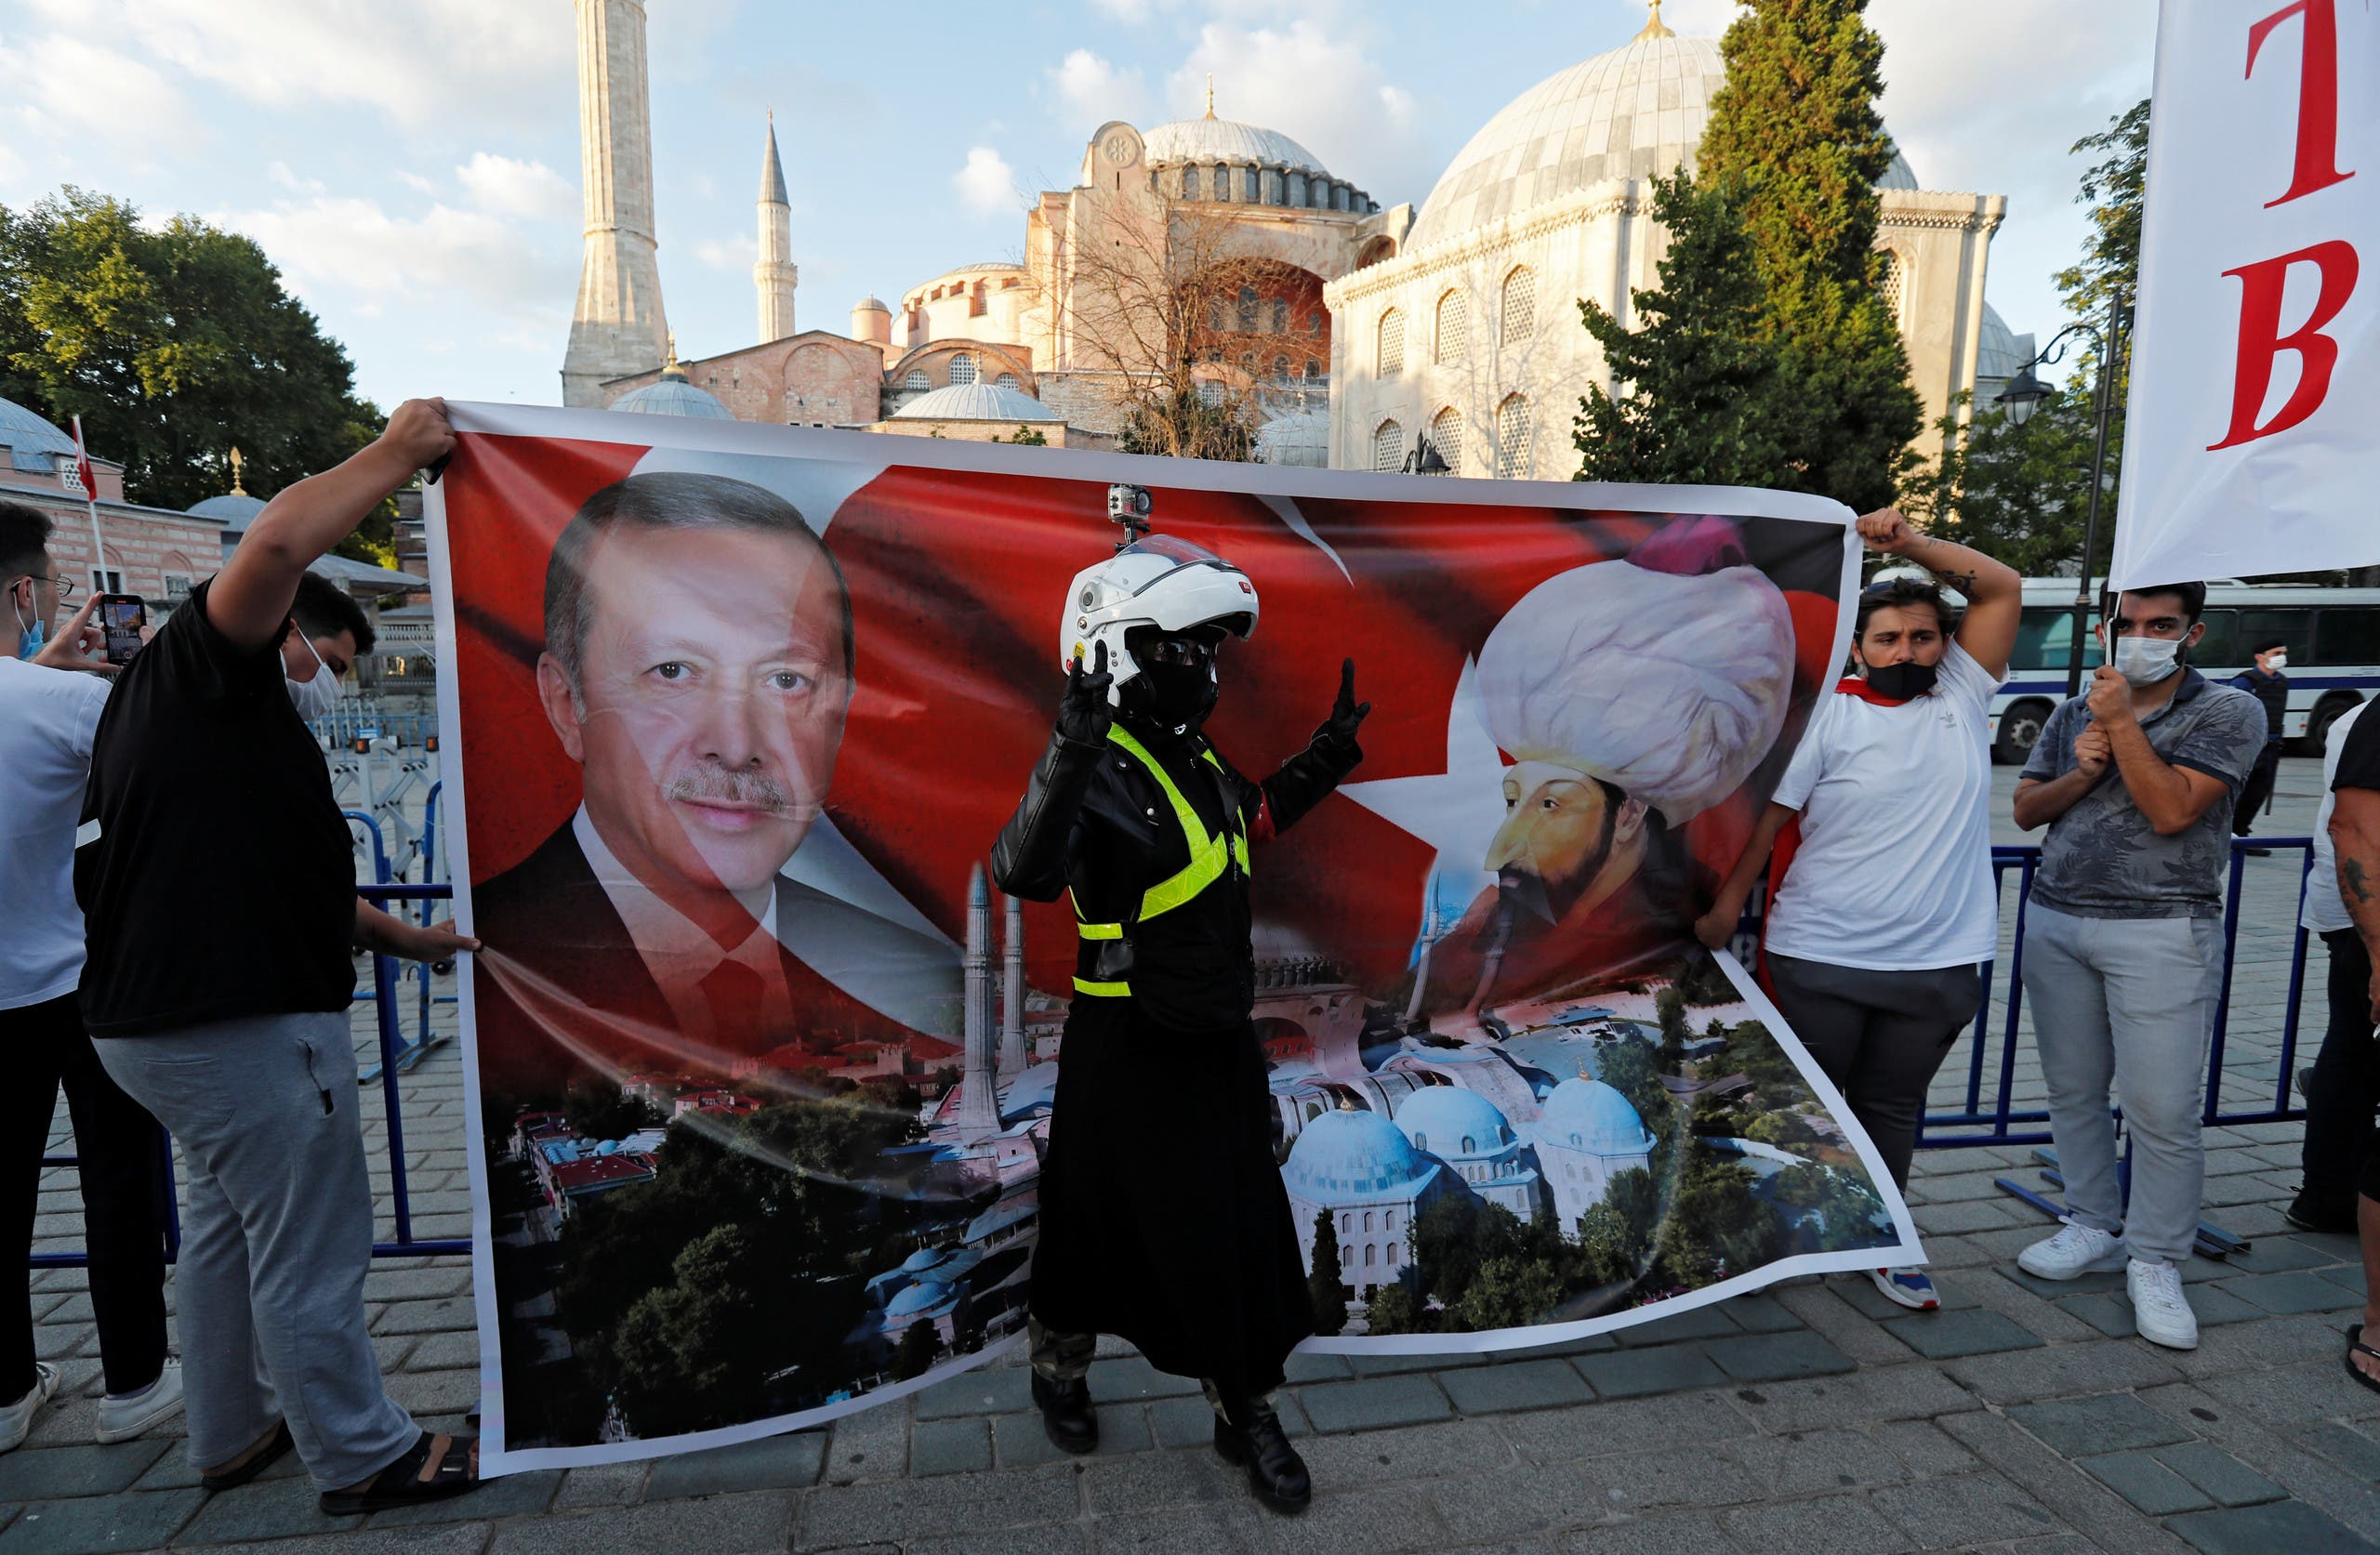 People hold a placard showing Turkish President Tayyip Erdogan and Ottoman sultan Mehmed II in front of the Hagia Sophia or Ayasofya in Istanbul. (Reuters)